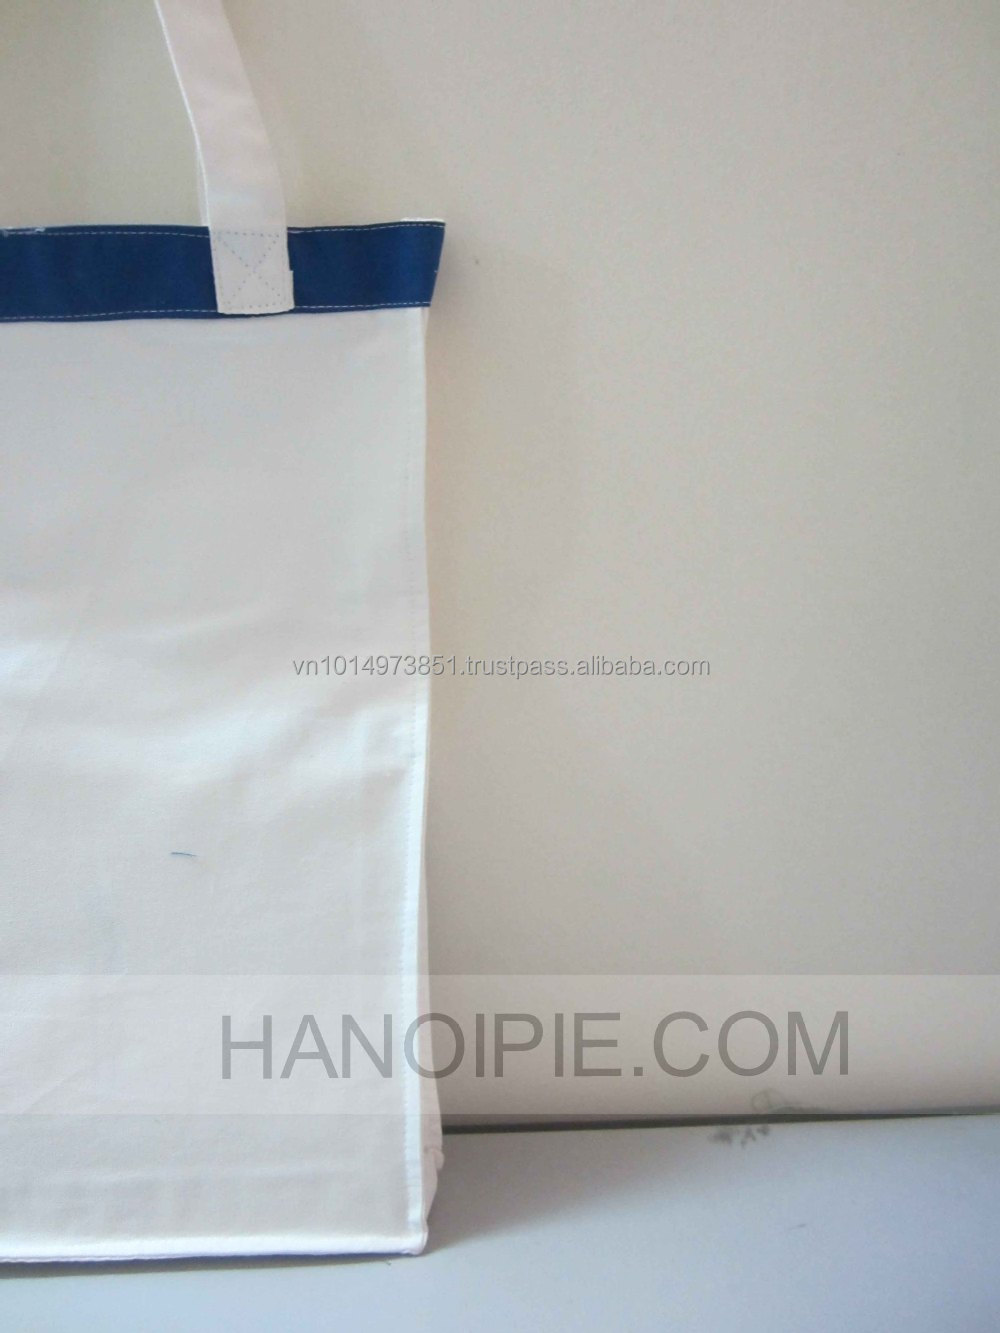 Wholesale Promotional Logo Printed Bag  Cotton Grocery Bags 015CB 2.jpg